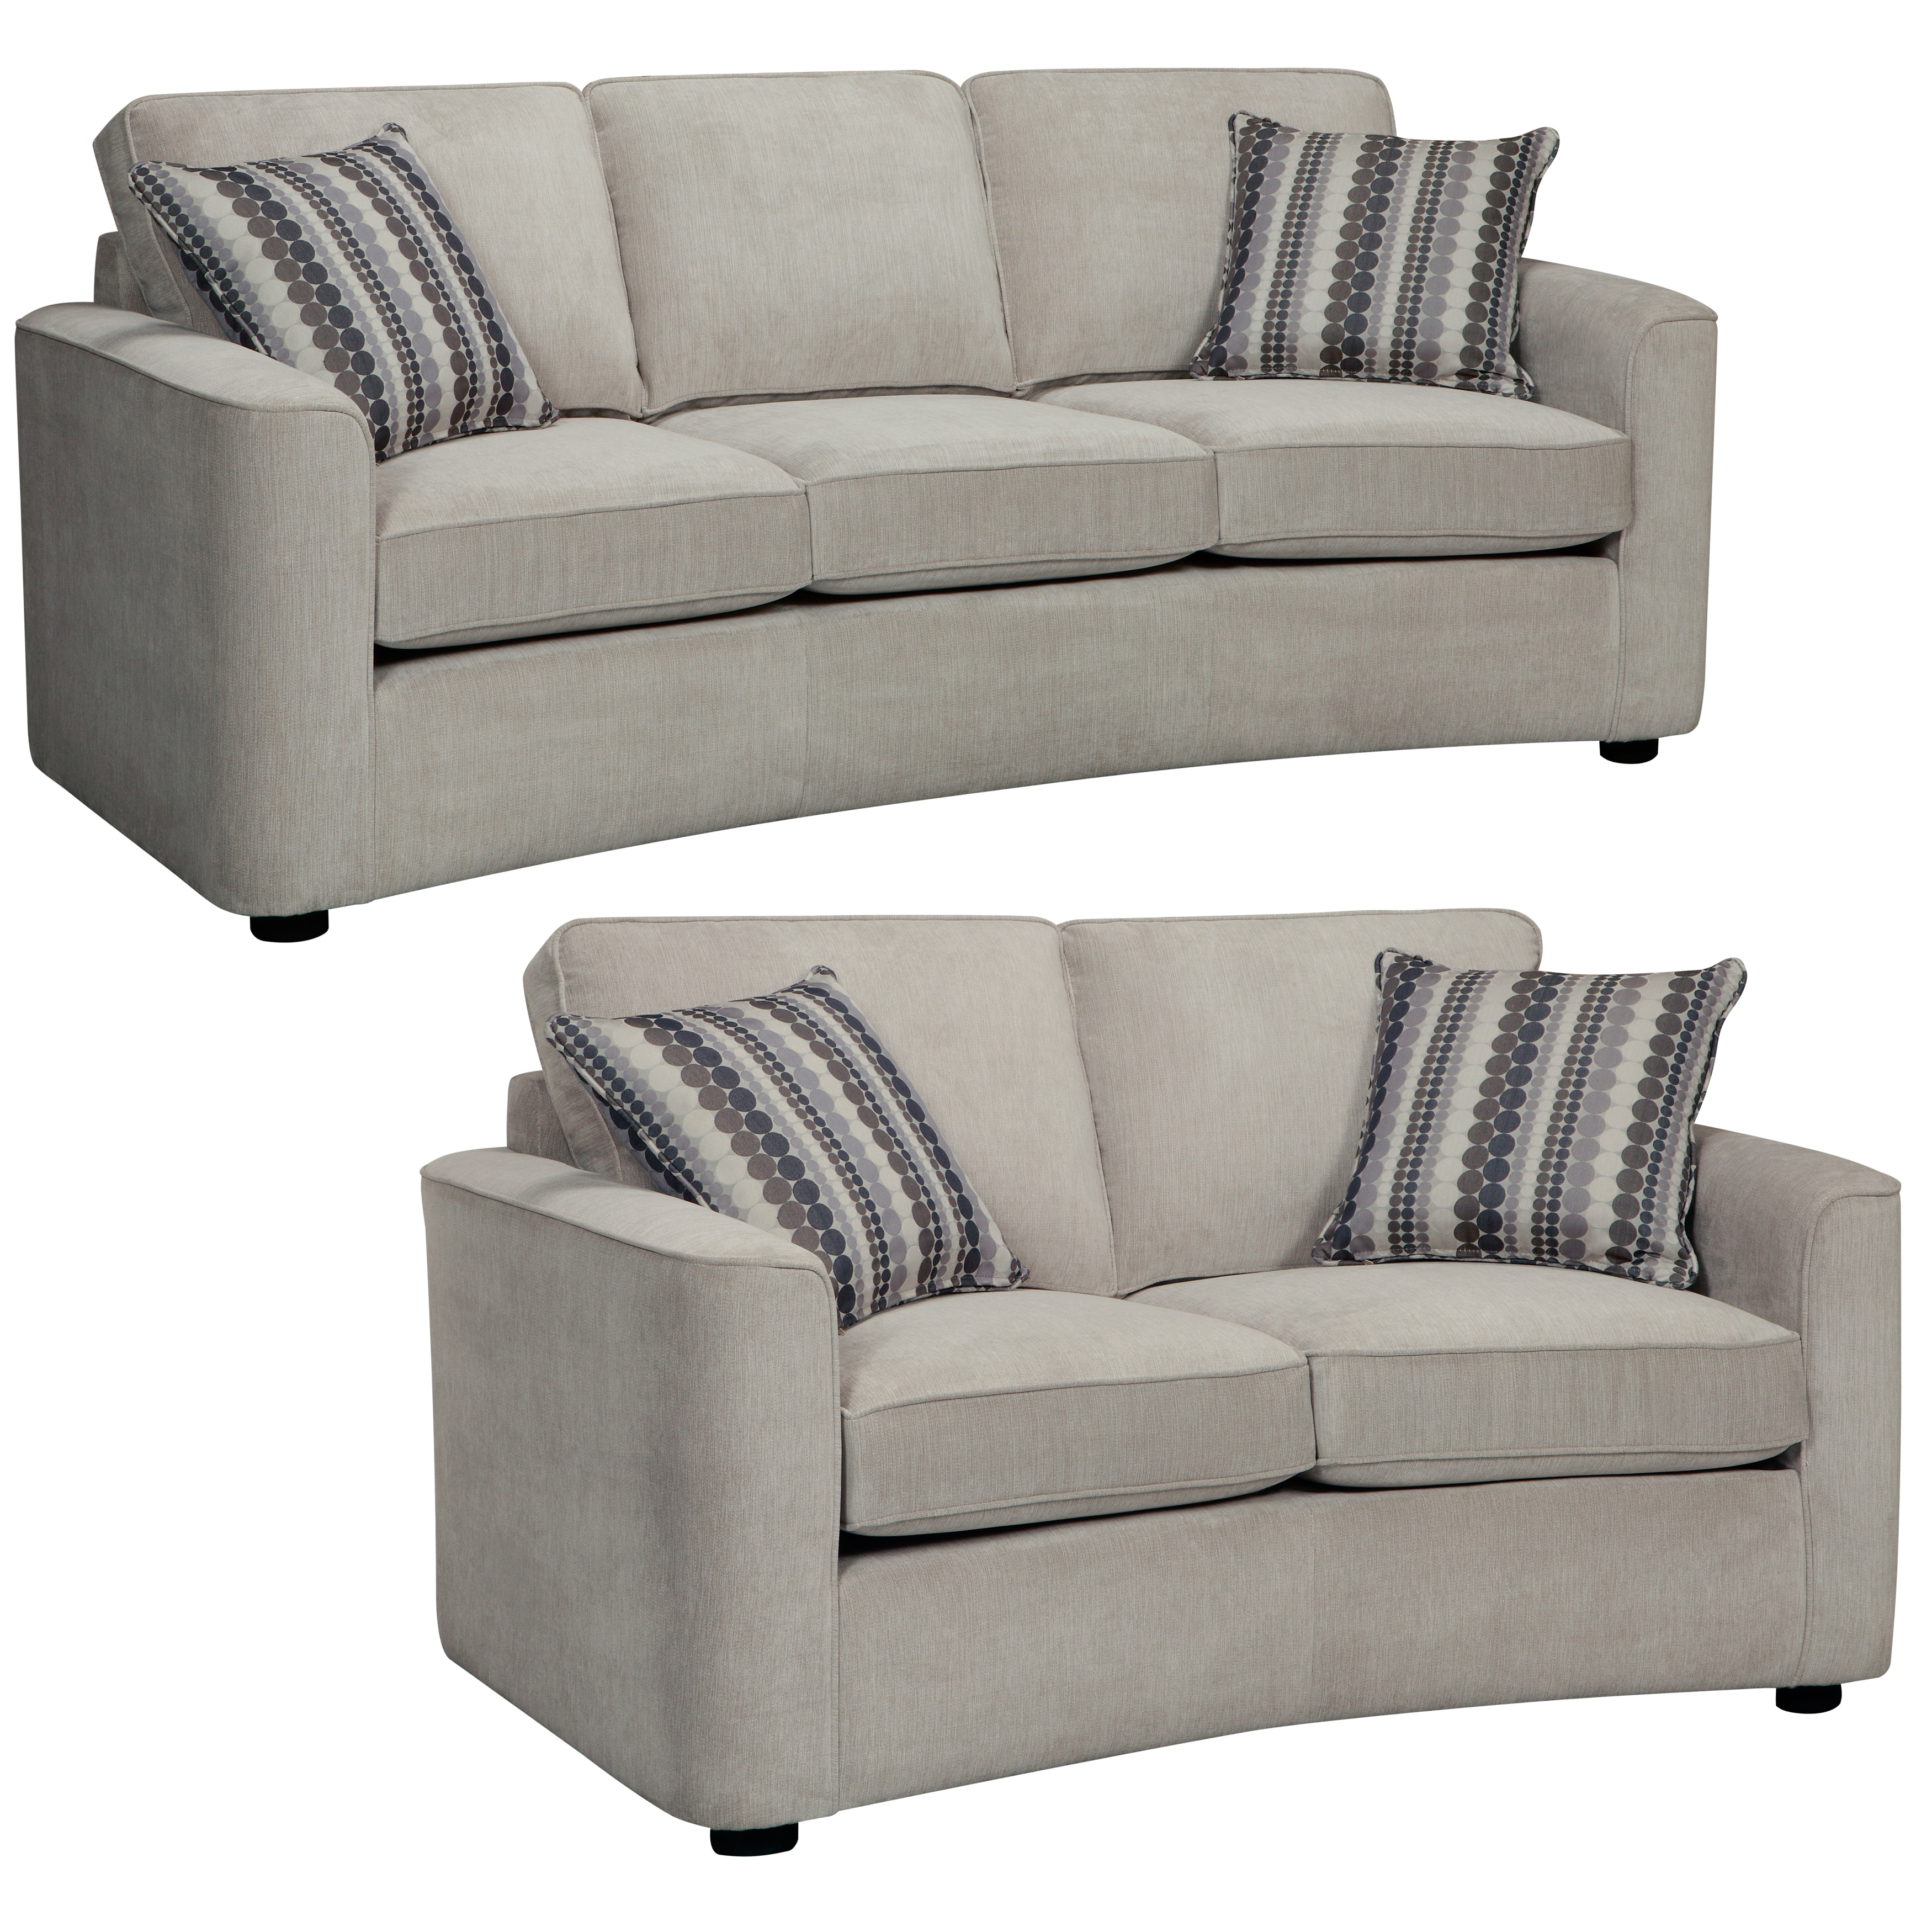 Shop Marley Light Gray Sofa and Loveseat - Free Shipping Today - Overstock - 7516917